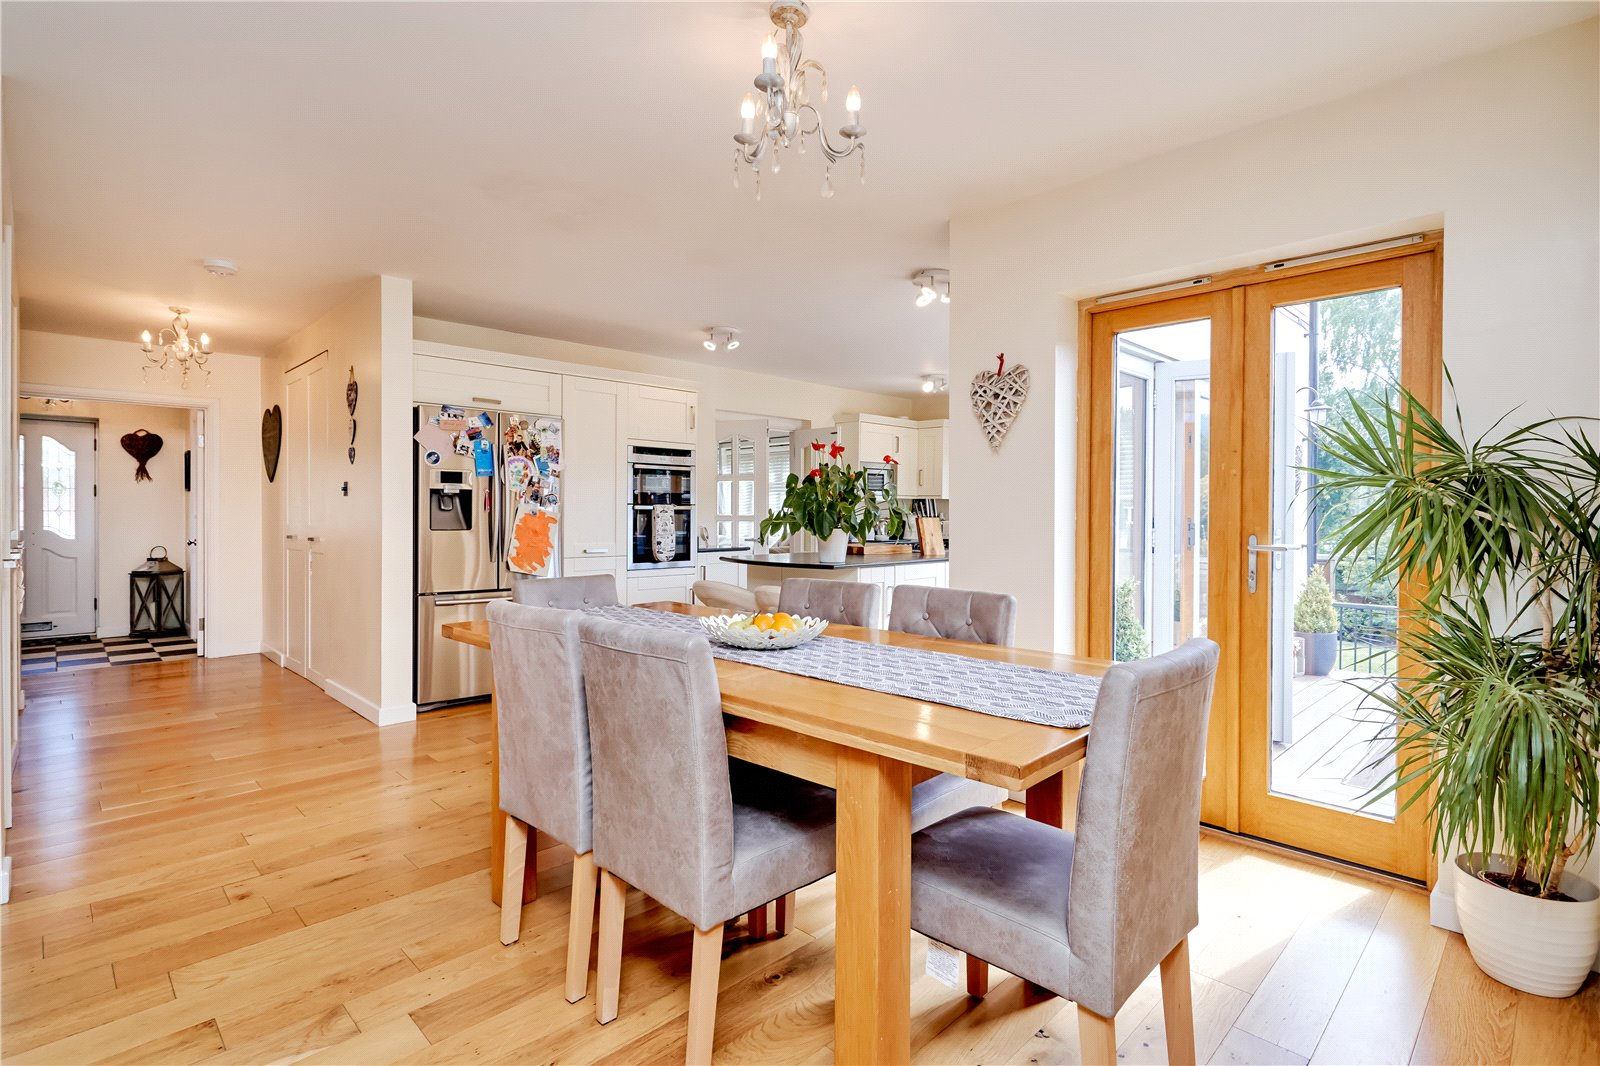 4 bed house for sale in Welwyn, AL6 0QG  - Property Image 11